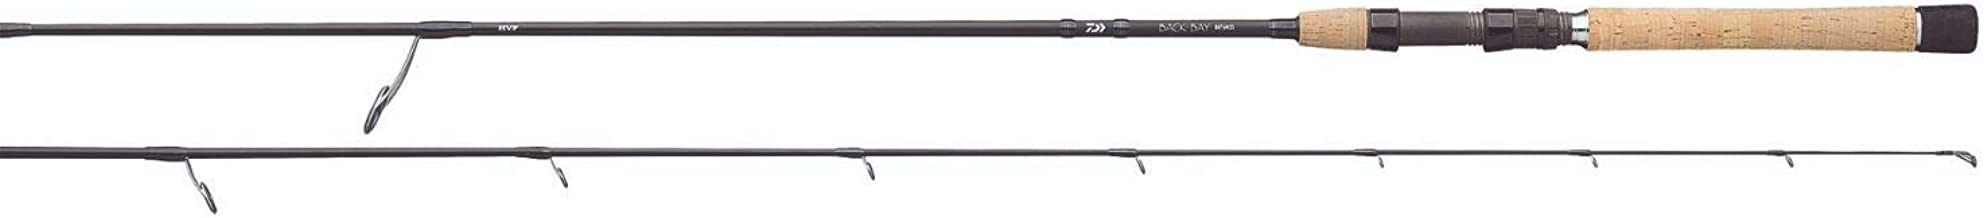 Daiwa BB76MXS Daiwa, Back Bay 1 Piece Spinning Rod, 7.6